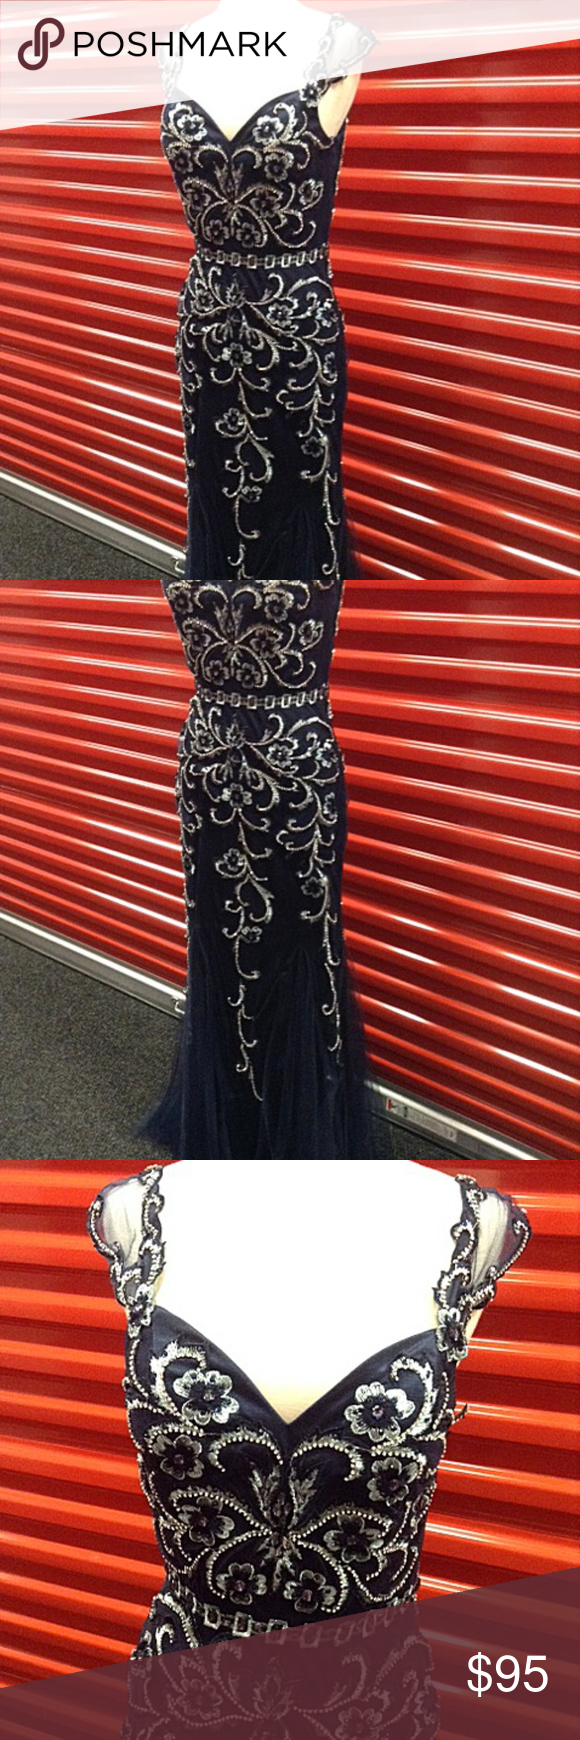 New gown party prom long evening dress navy blue boutique prom